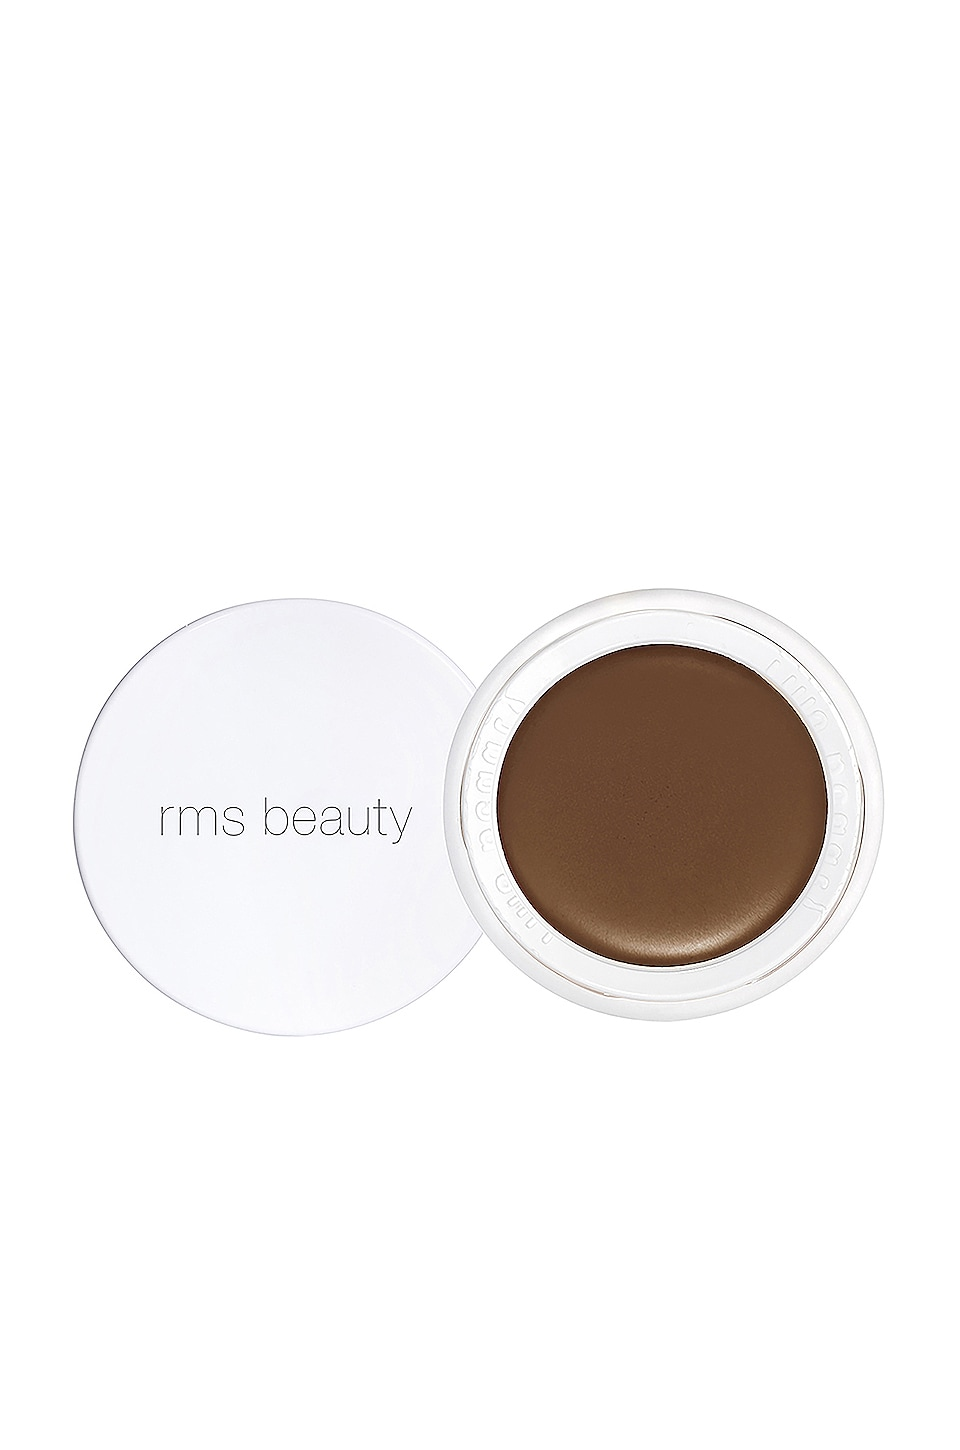 RMS Beauty Uncover Up in 122